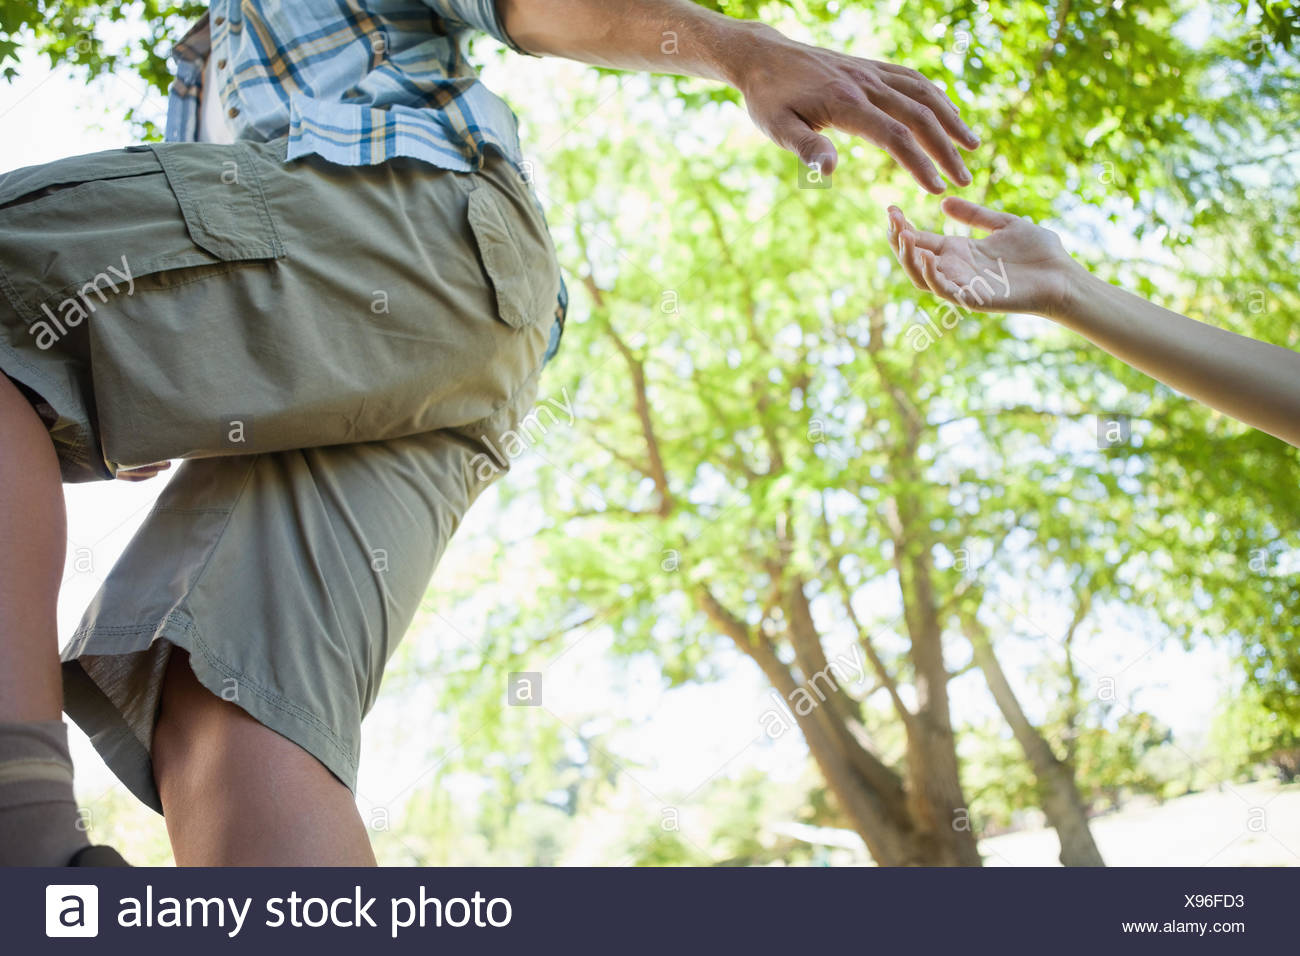 Man giving helping hand to girlfriend on hike - Stock Image